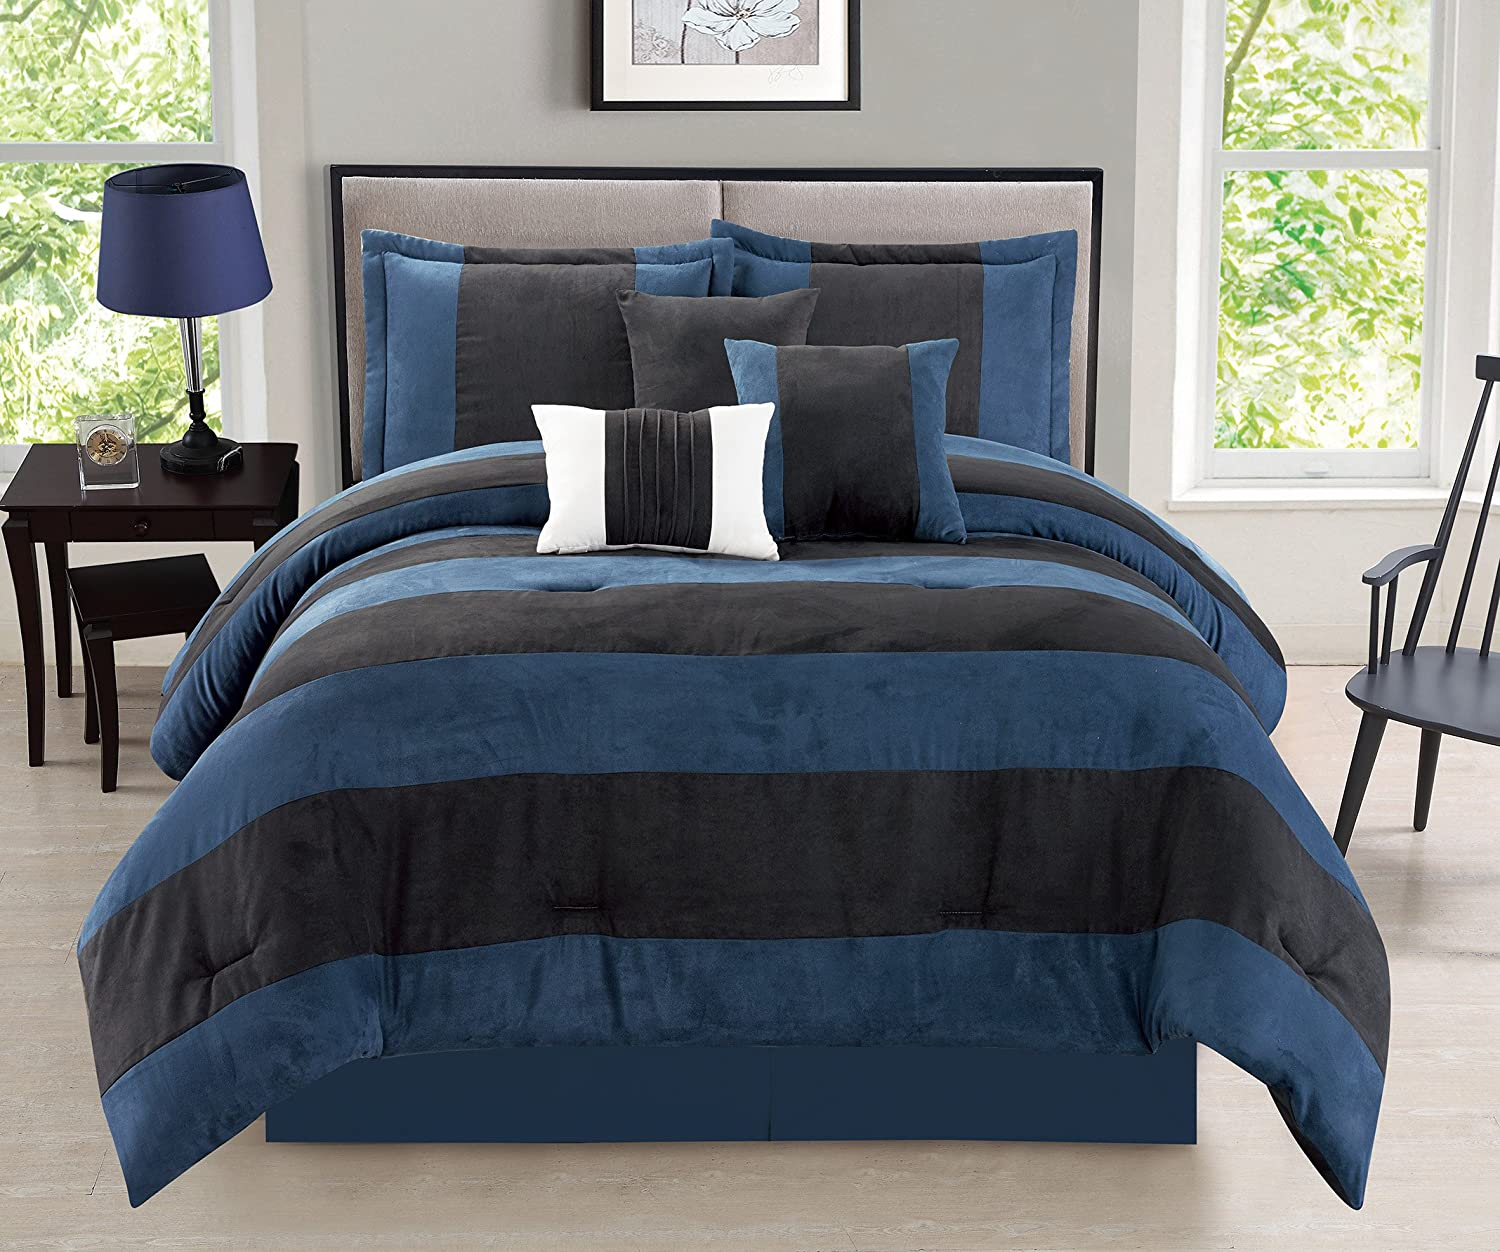 Van Dam 7-Piece Suede Comforter Set Patchwork Bedding - Navy Blue